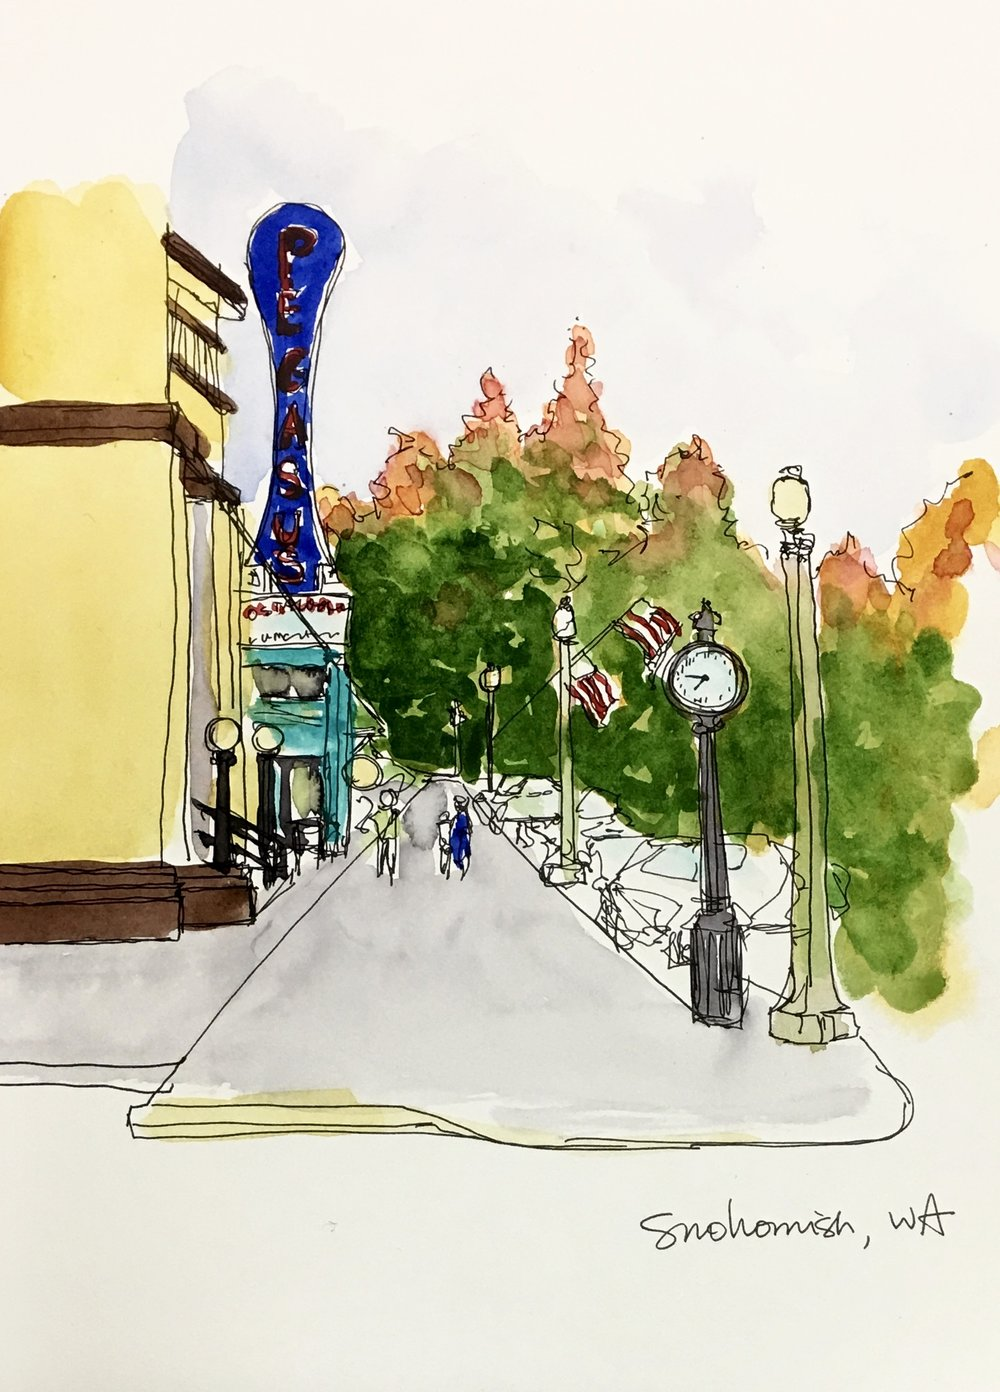 My sketch of downtown Snohomish